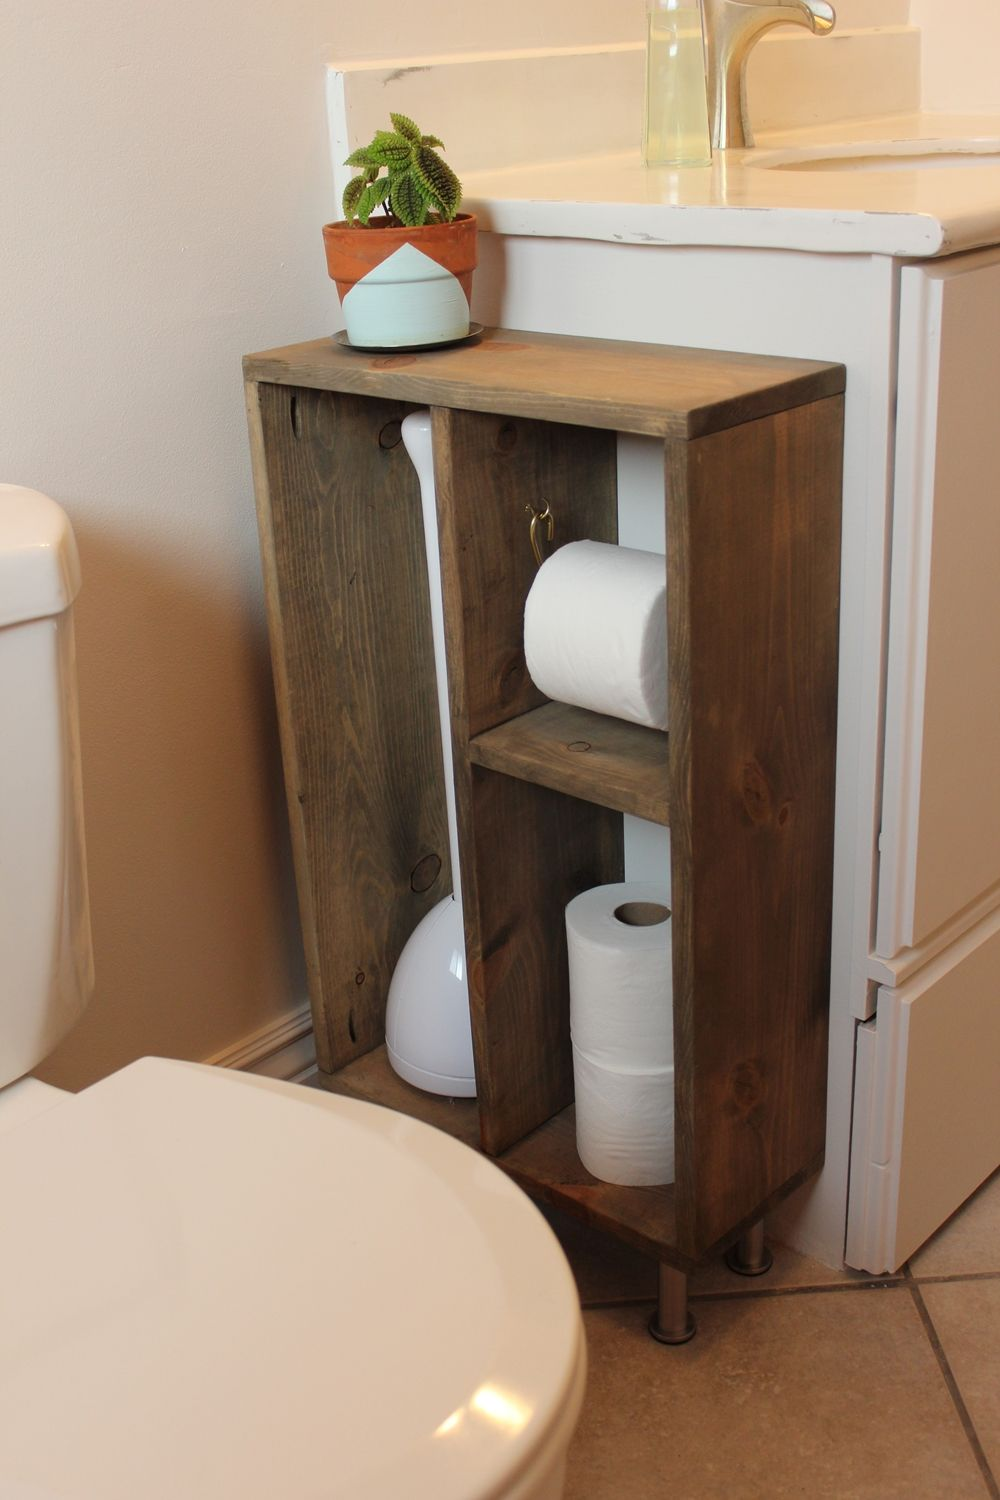 Incroyable Side Bathroom Storage